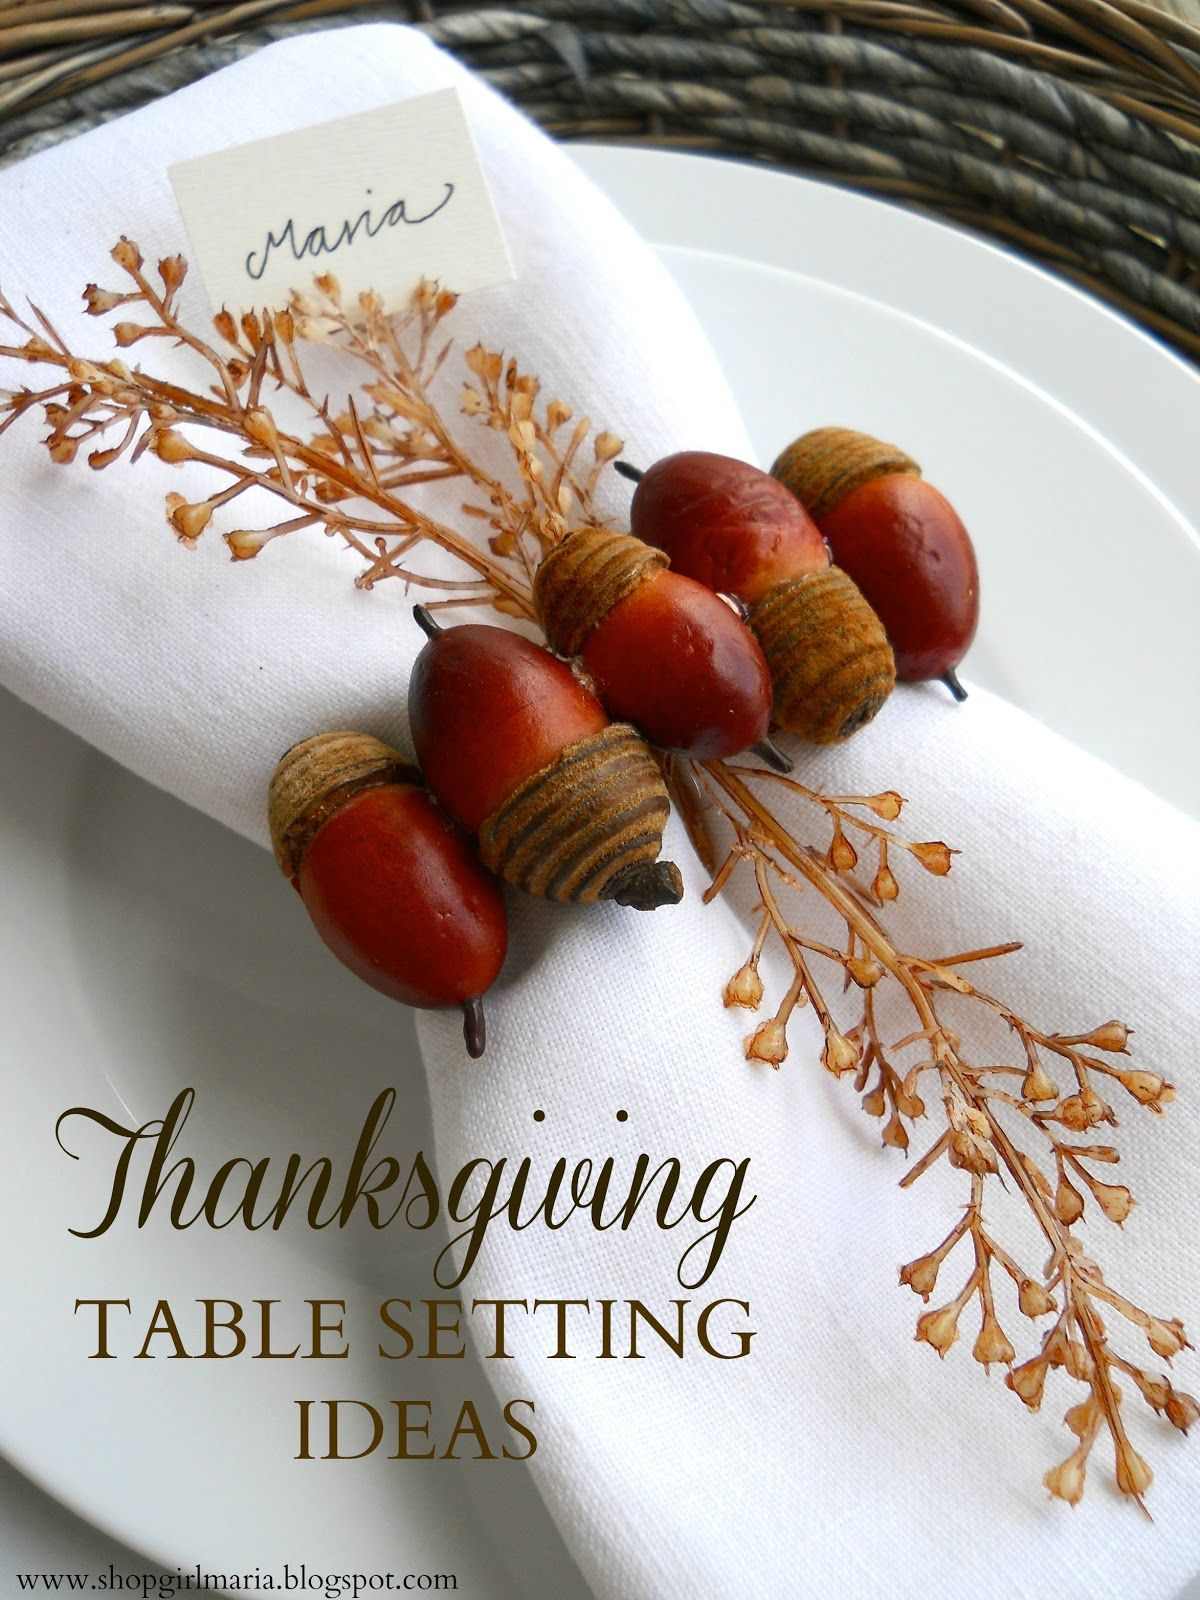 Shopgirl Thanksgiving Table Setting Ideas & Shopgirl: Thanksgiving Table Setting Ideas | A Homemade Living ...